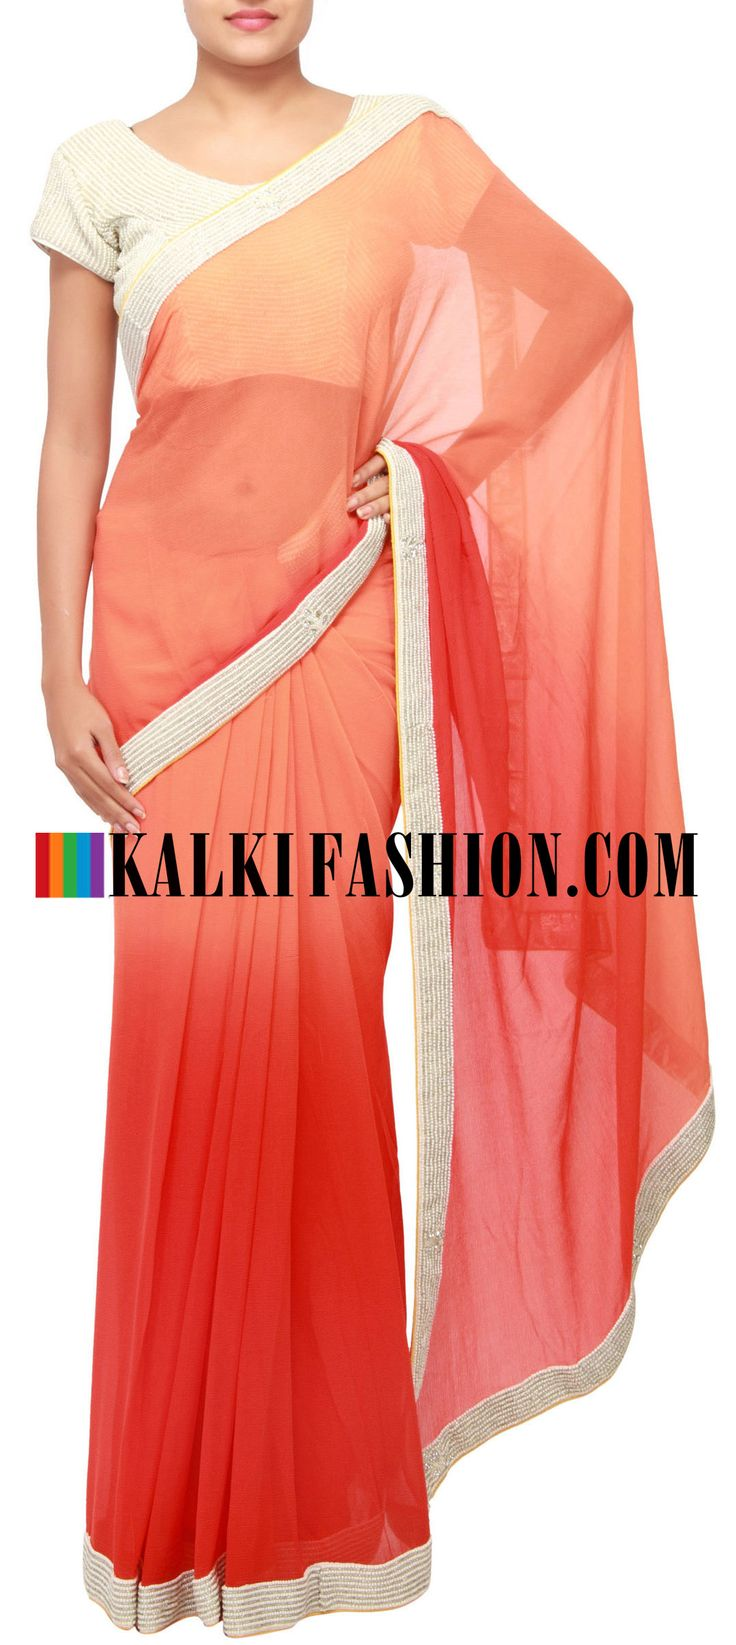 Get this beautiful saree here: http://www.kalkifashion.com/shaded-saree-in-peach-and-red-enhanced-with-pearl-embroidery-only-on-kalki.html Free shipping worldwide.